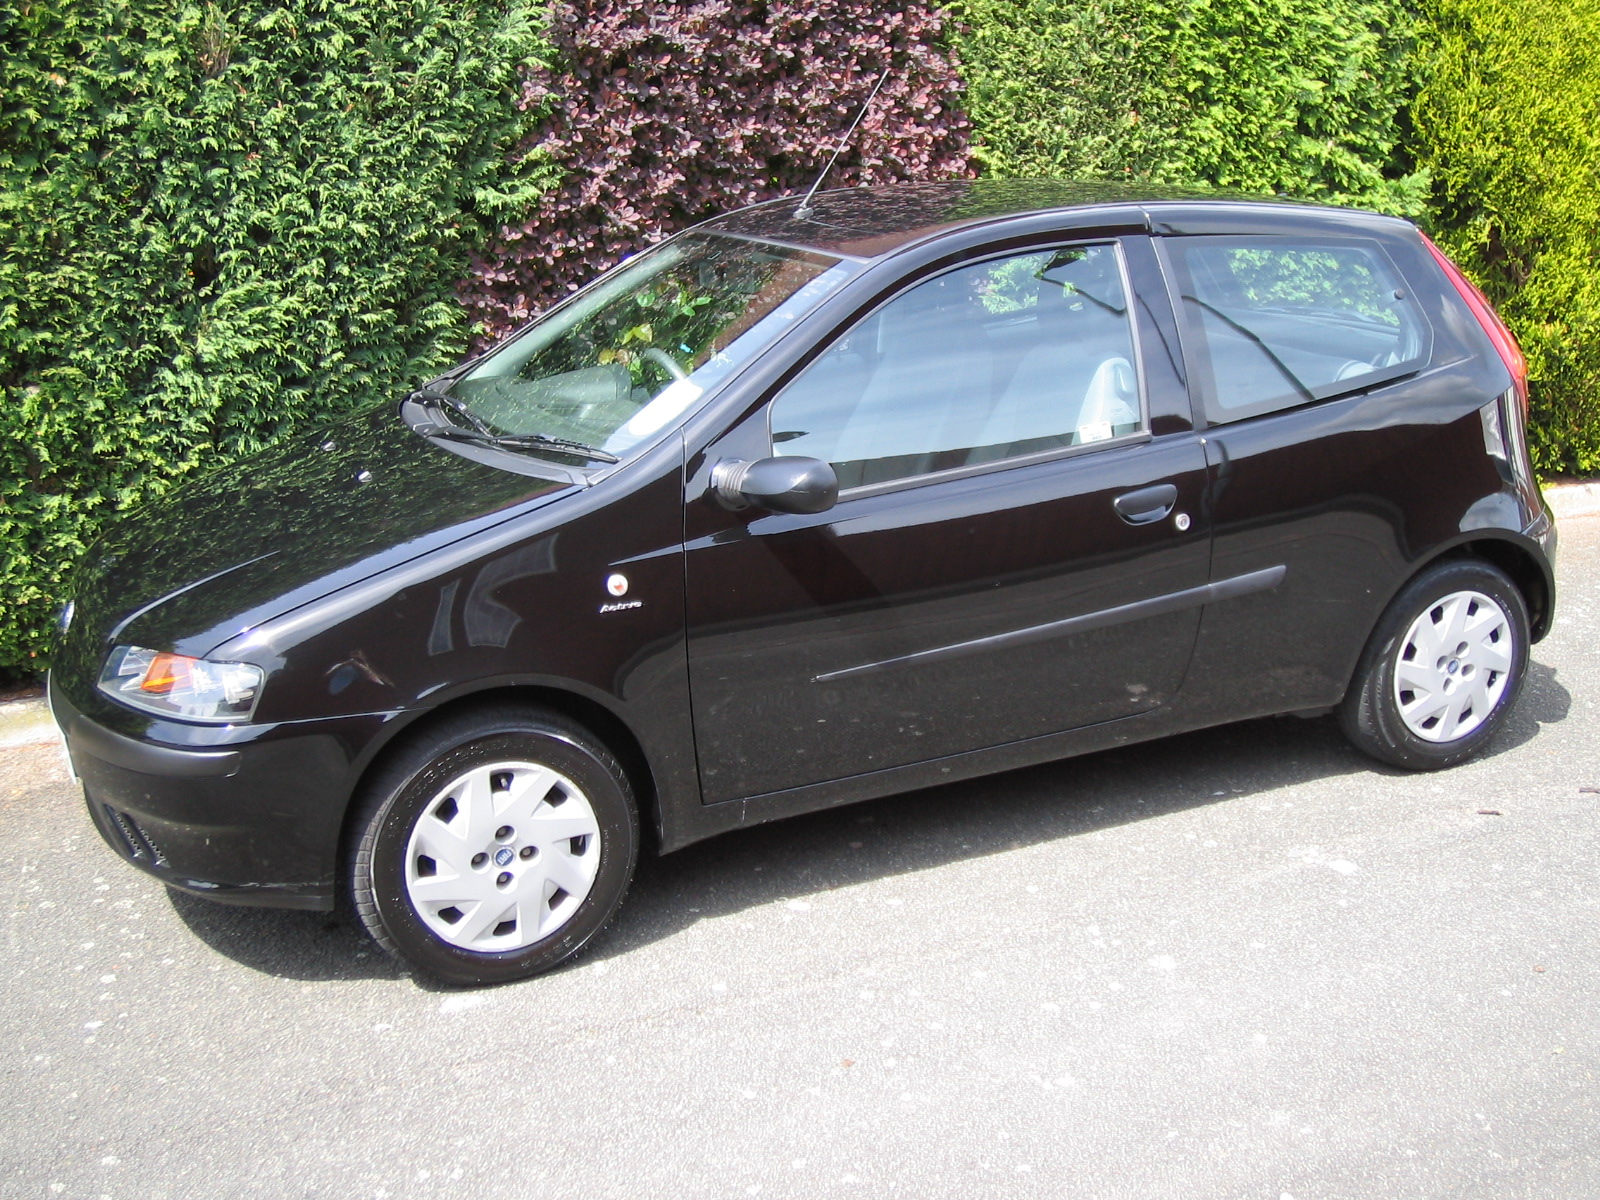 fiat punto - review and photos